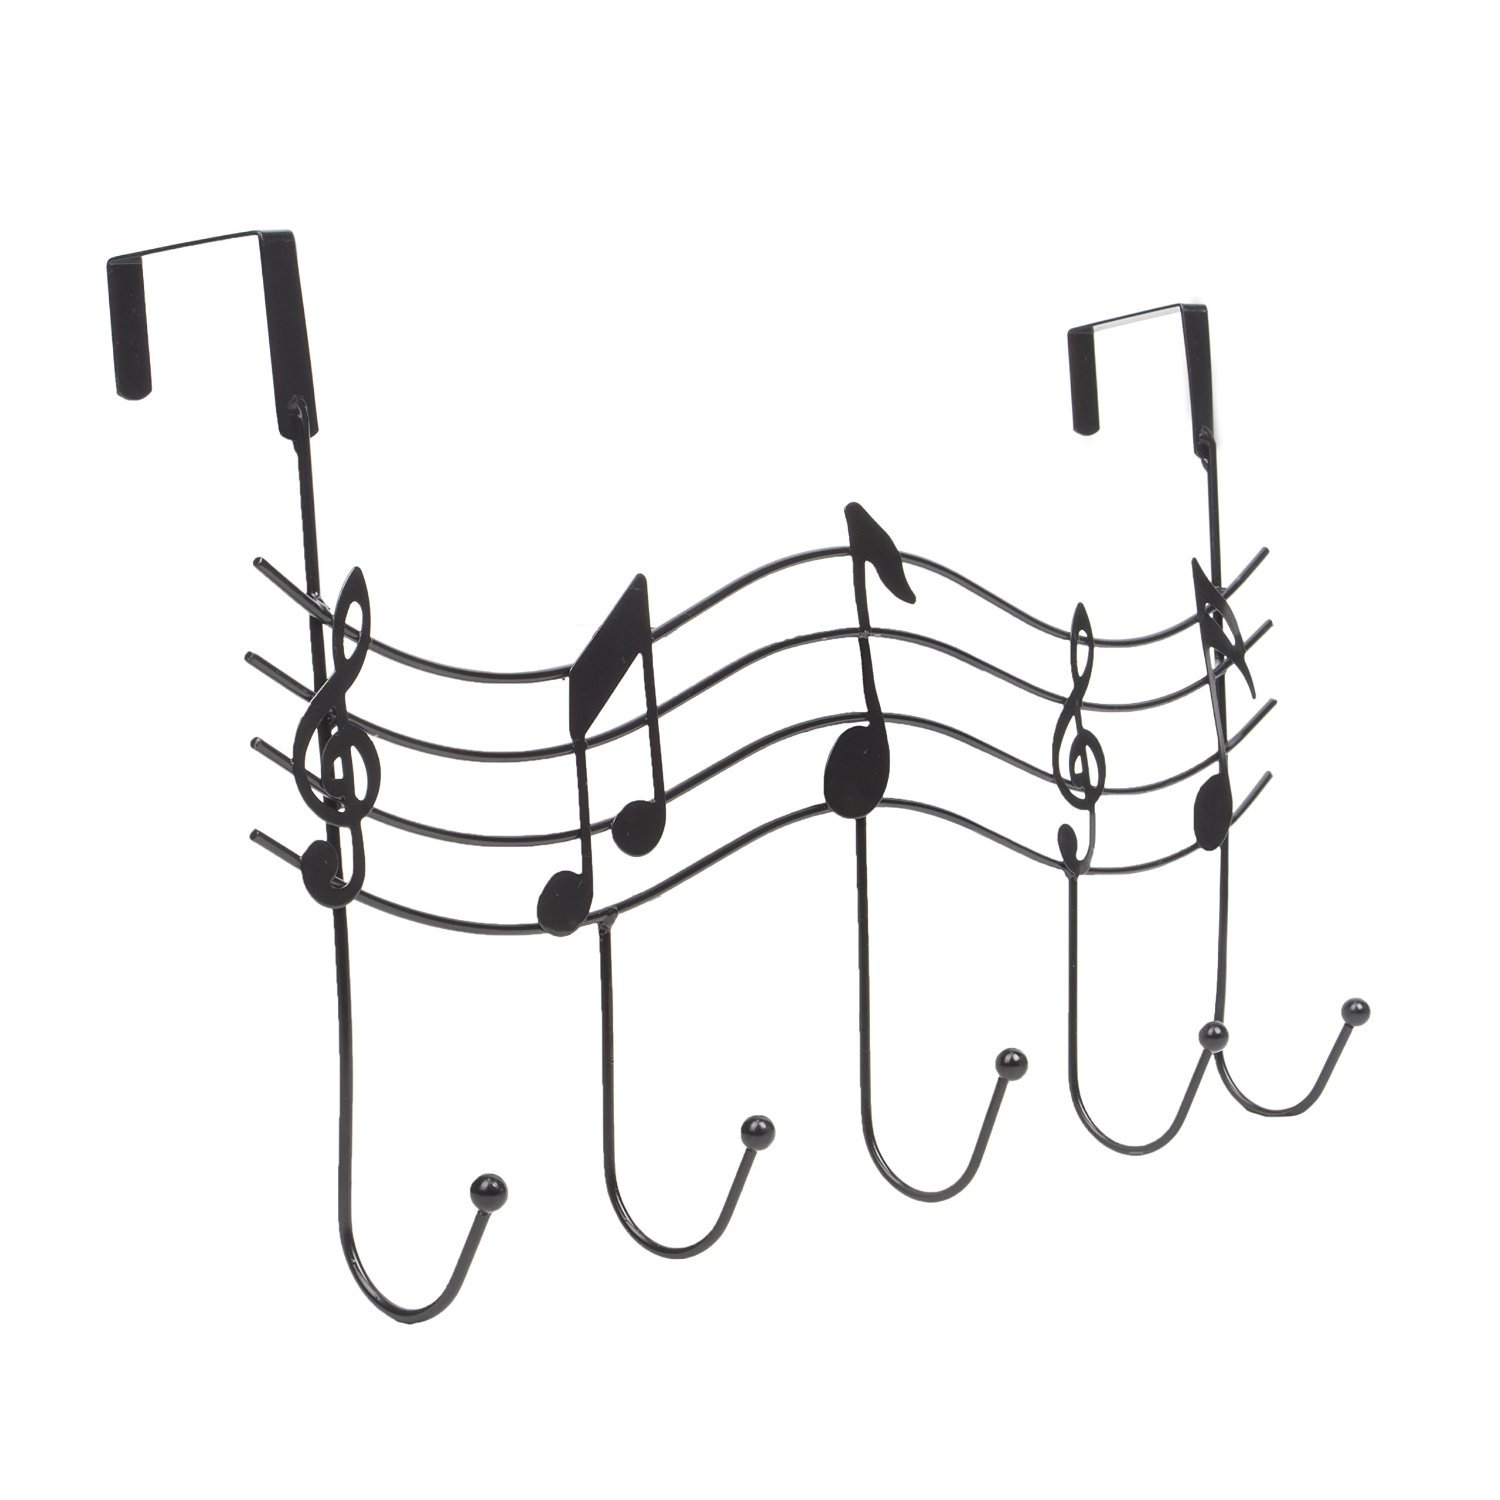 Fashionclubs Over the Door 5 Hanger Rack Hook Decorative Metal Hanger Holder Music Holder for Home Office Use (Black)